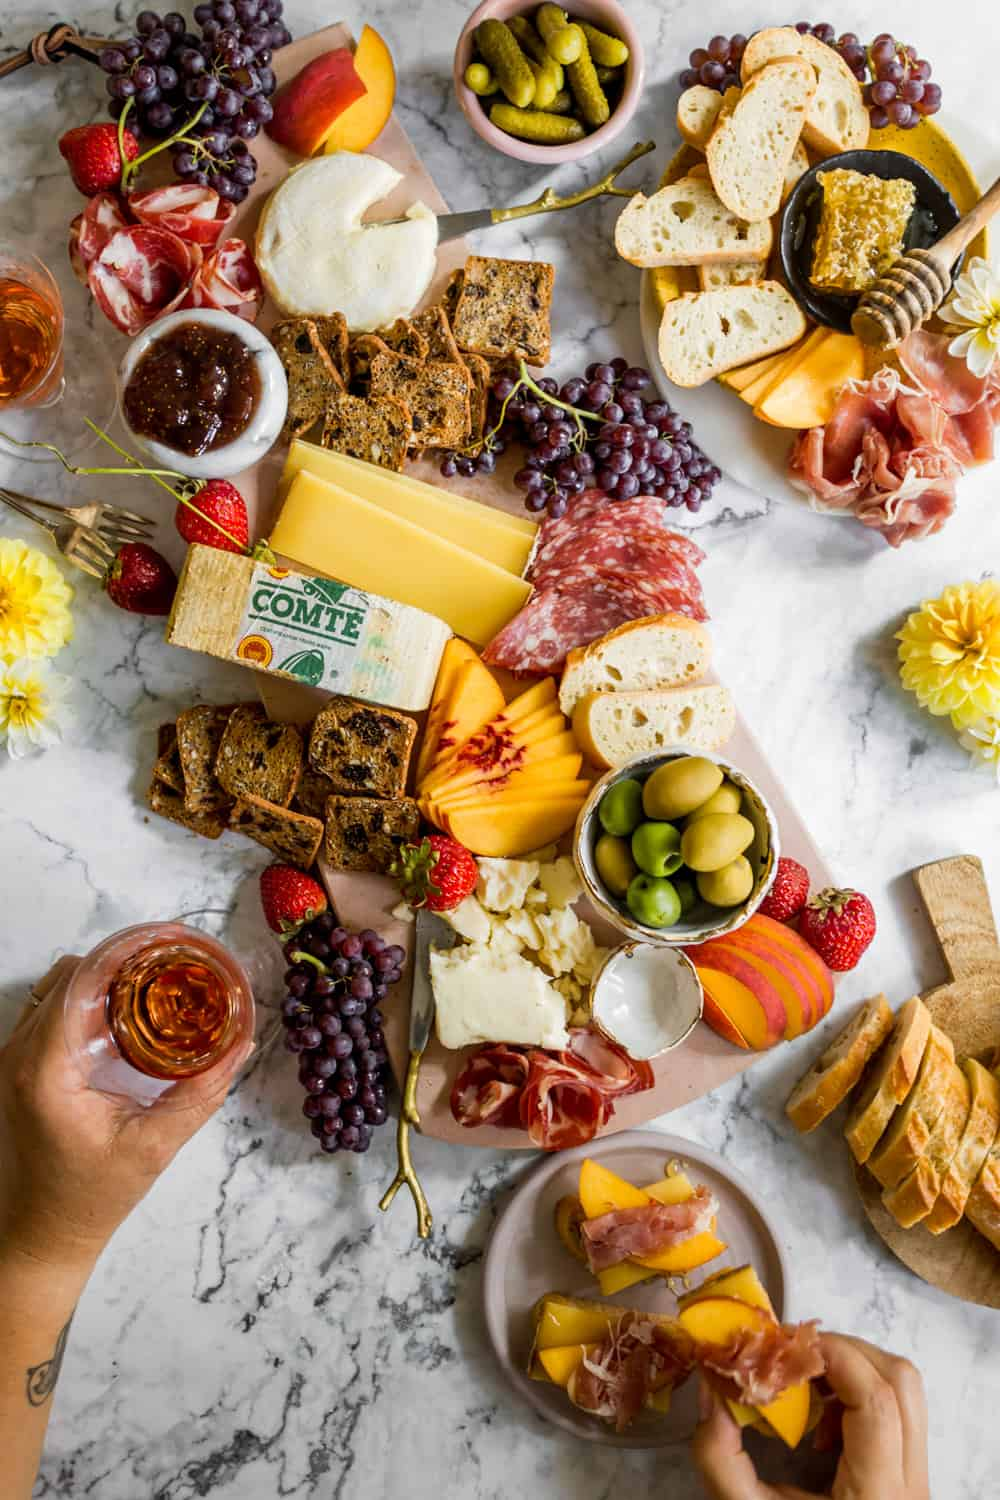 Lots of fresh summer charcuterie ingredients on platters. Woman's hands holding a drink and a cracker with cheese, fruit, and meat.